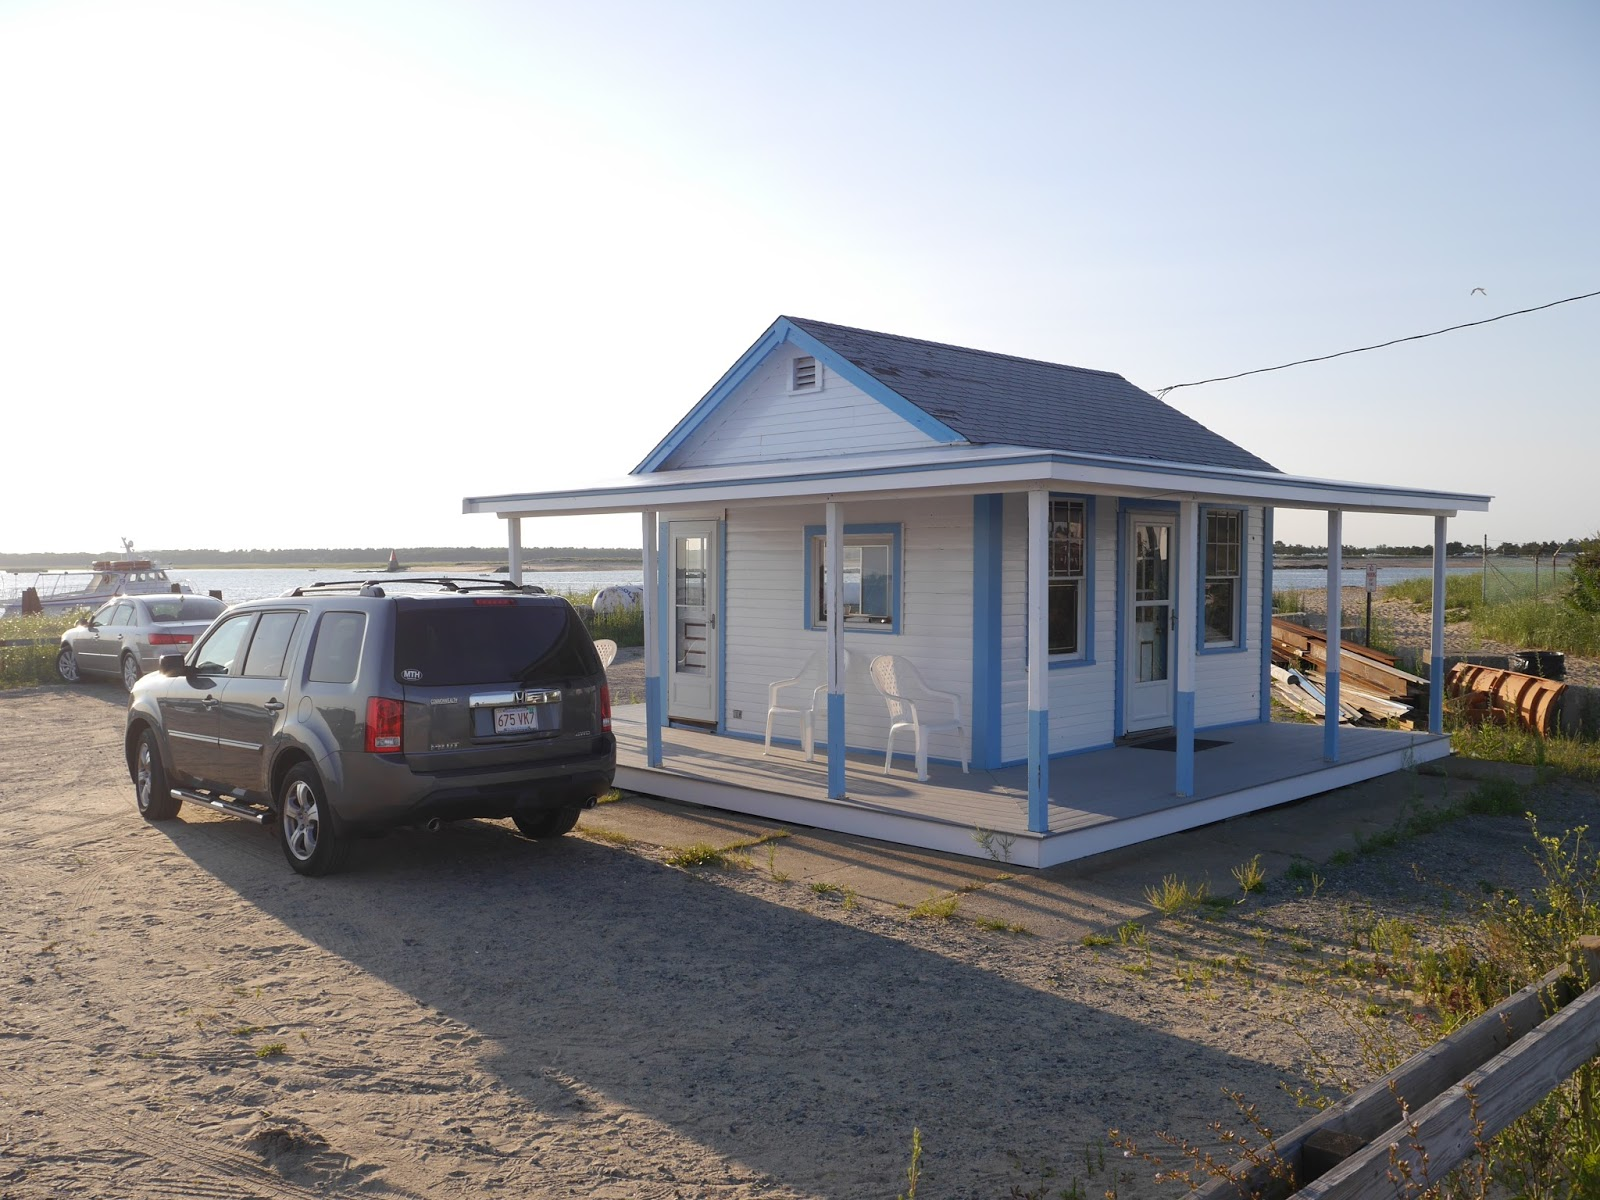 Relaxshackscom Tiny beach house on Plum Island MA